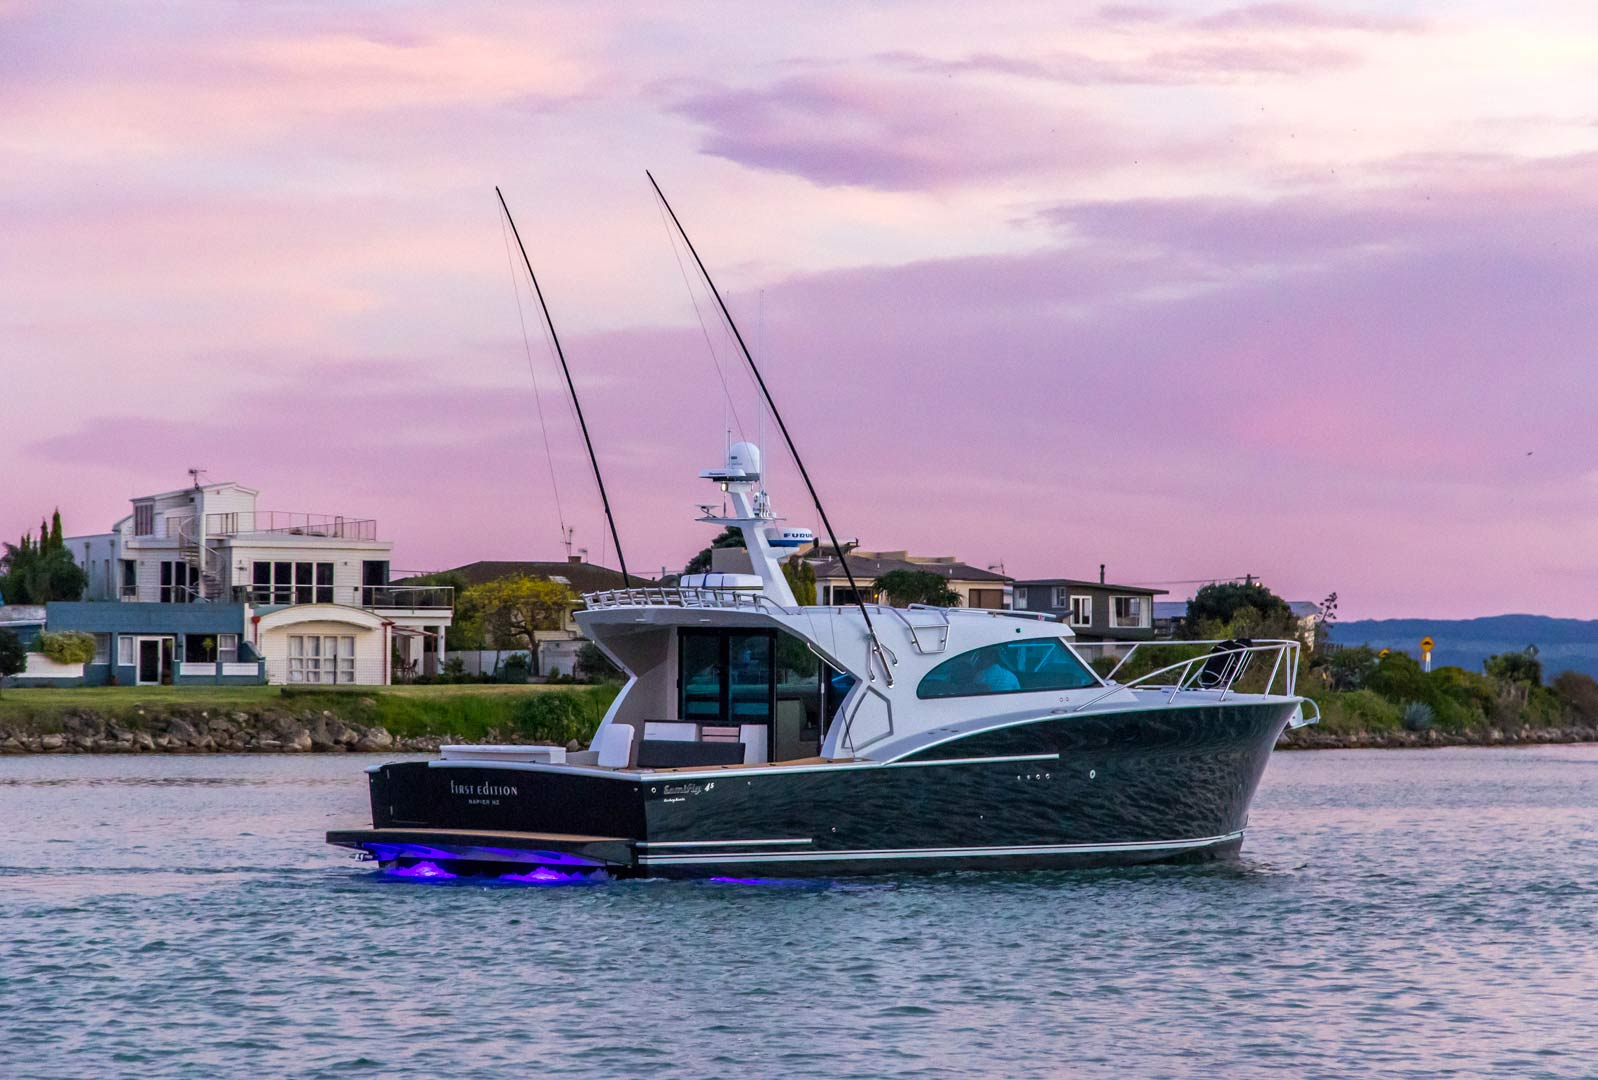 Review: Dickey Semifly 45 - Boating New Zealand, December 2016